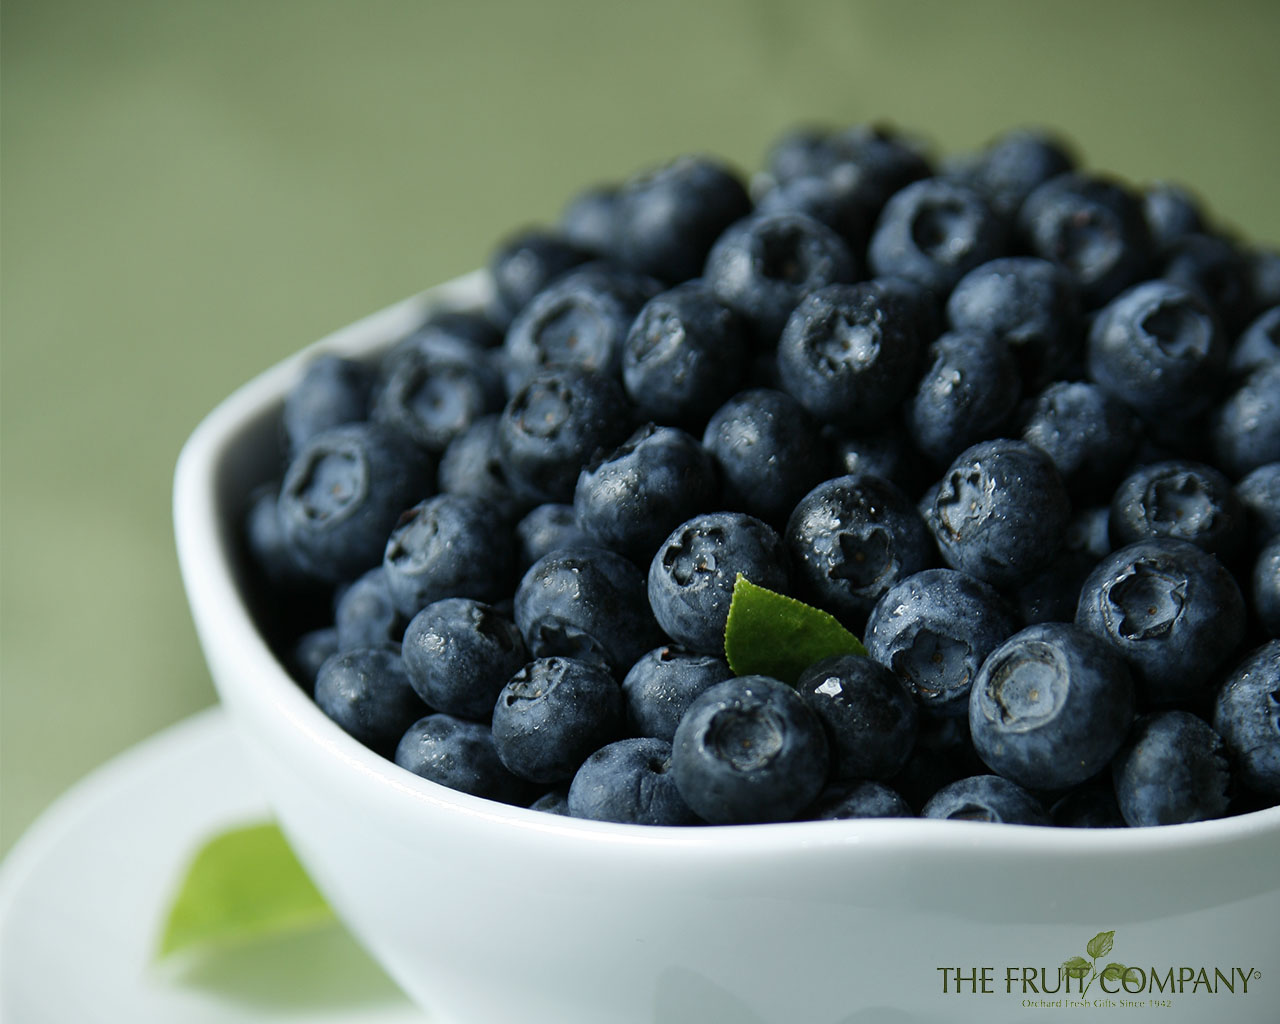 Delicious Blueberry Wallpaper 16022